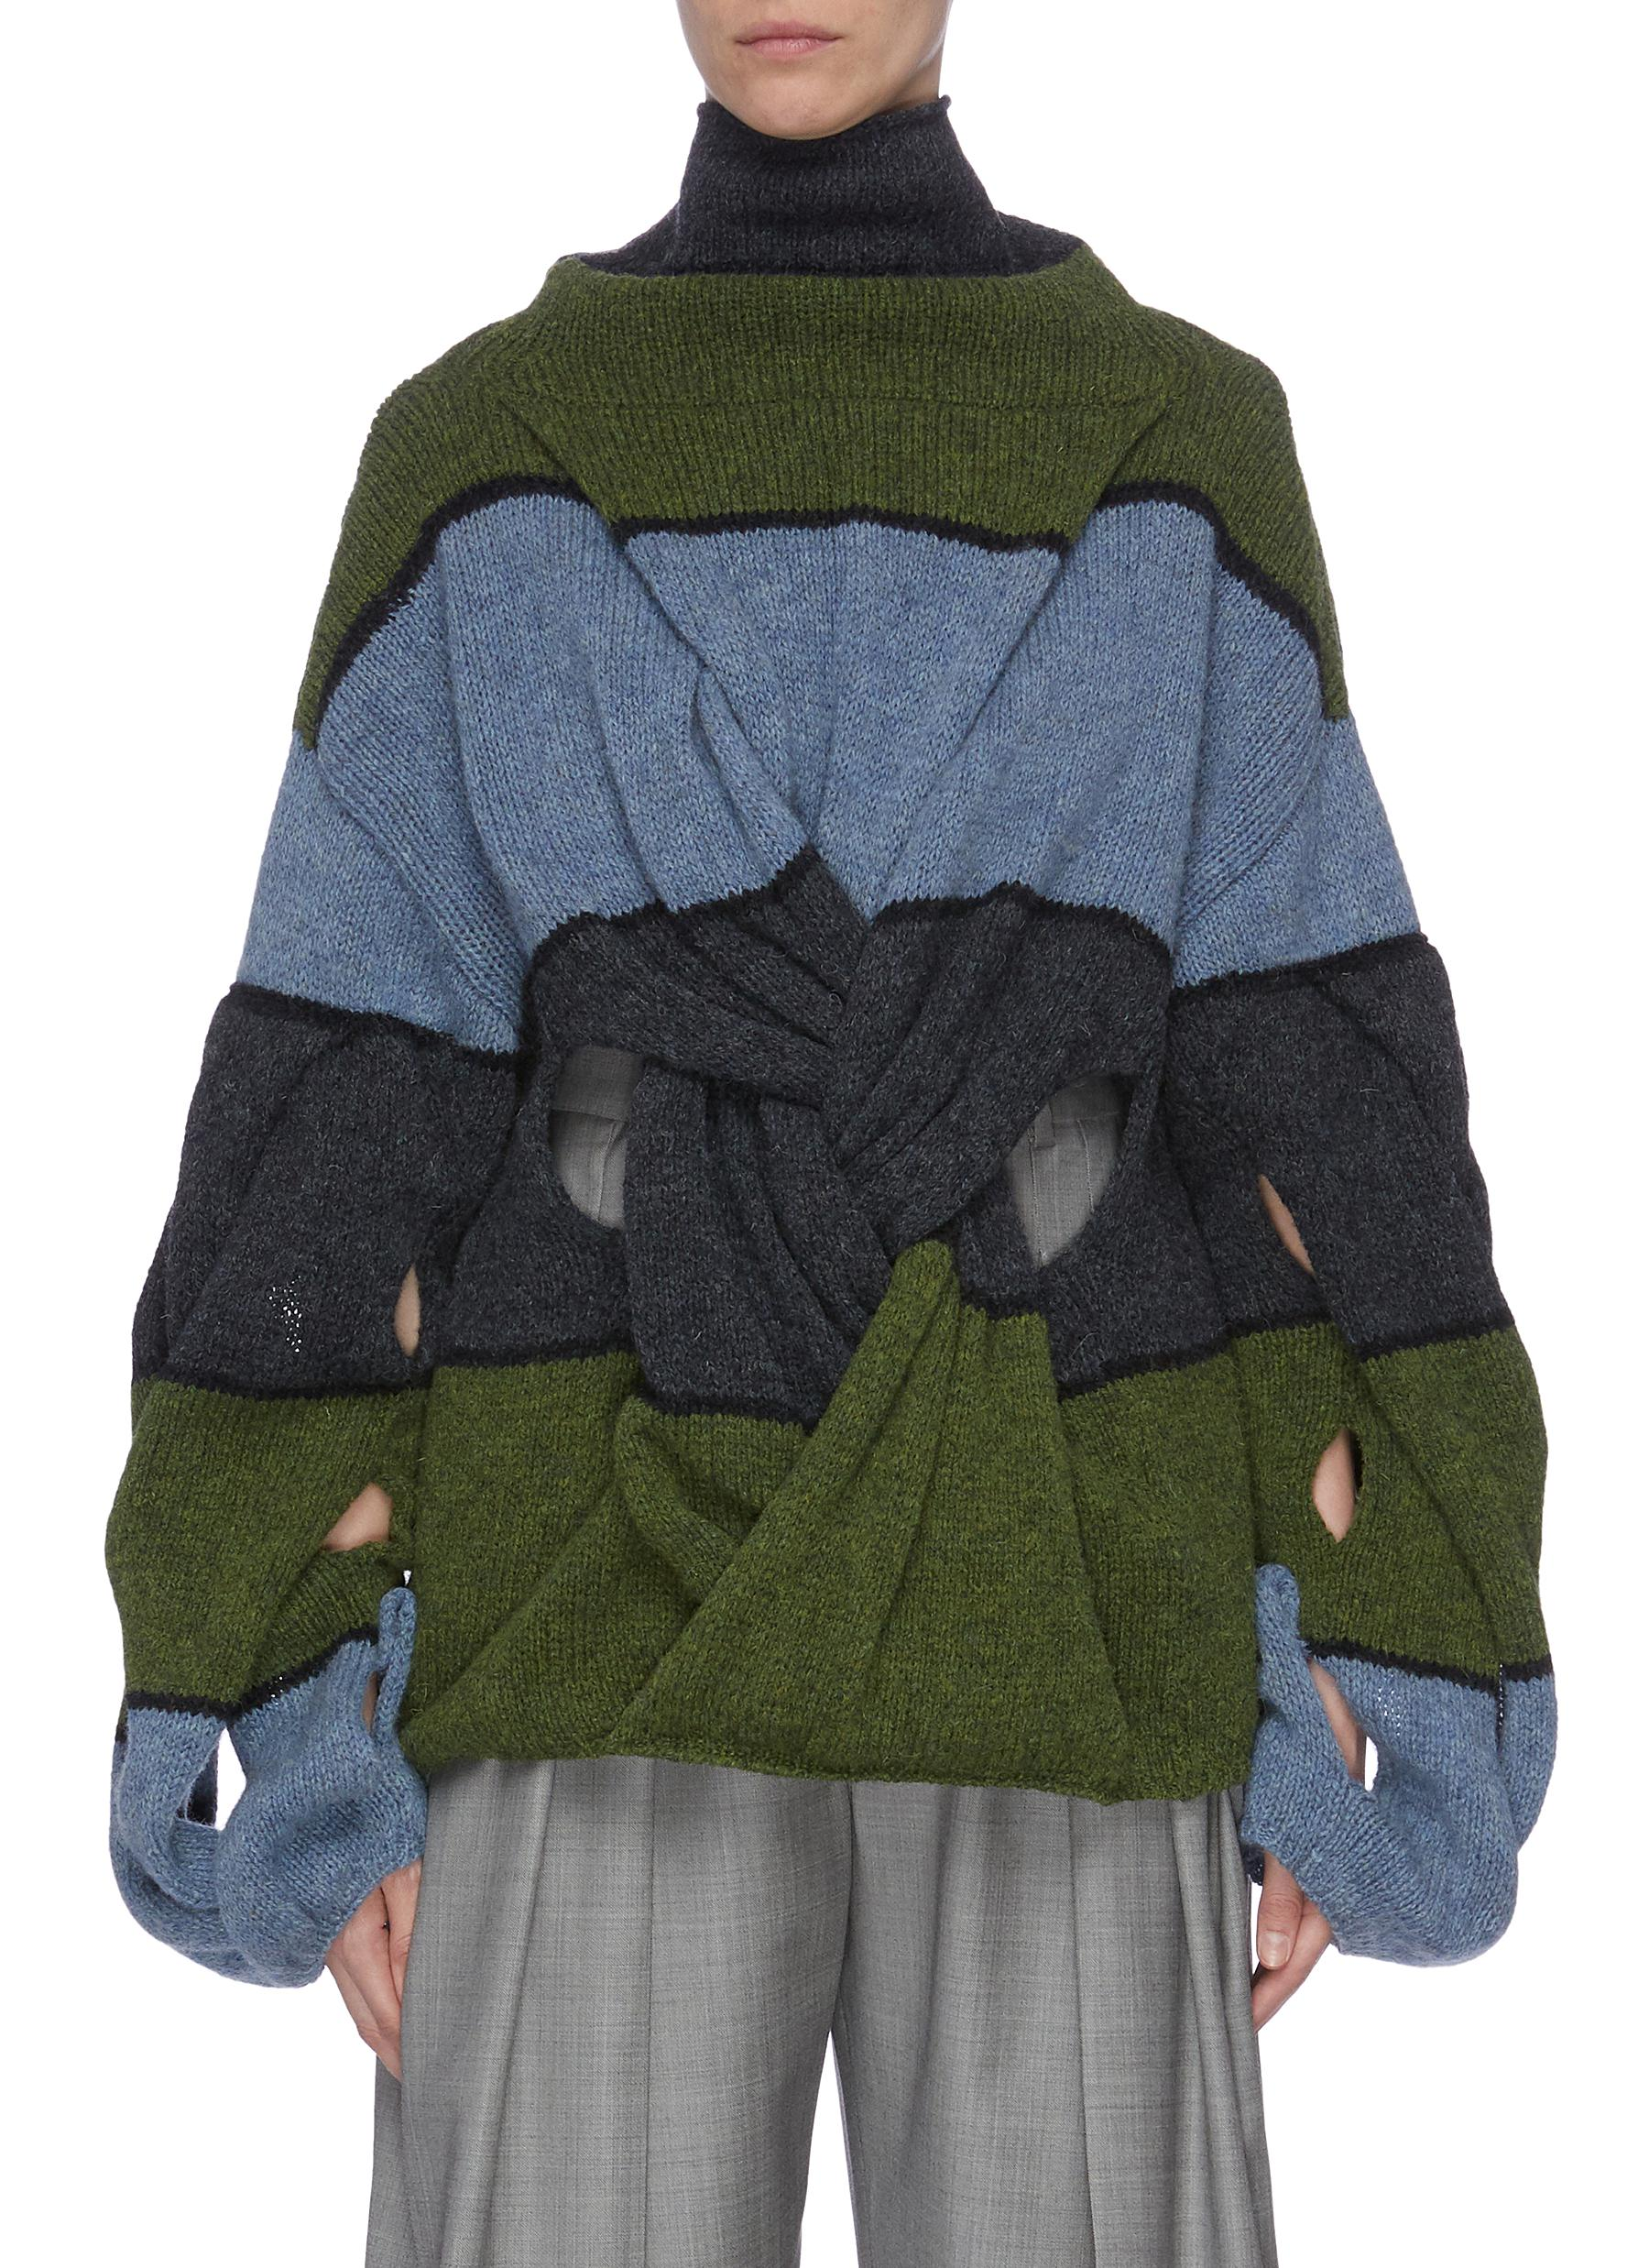 Twist front colourblock panelled sweater by Jw Anderson